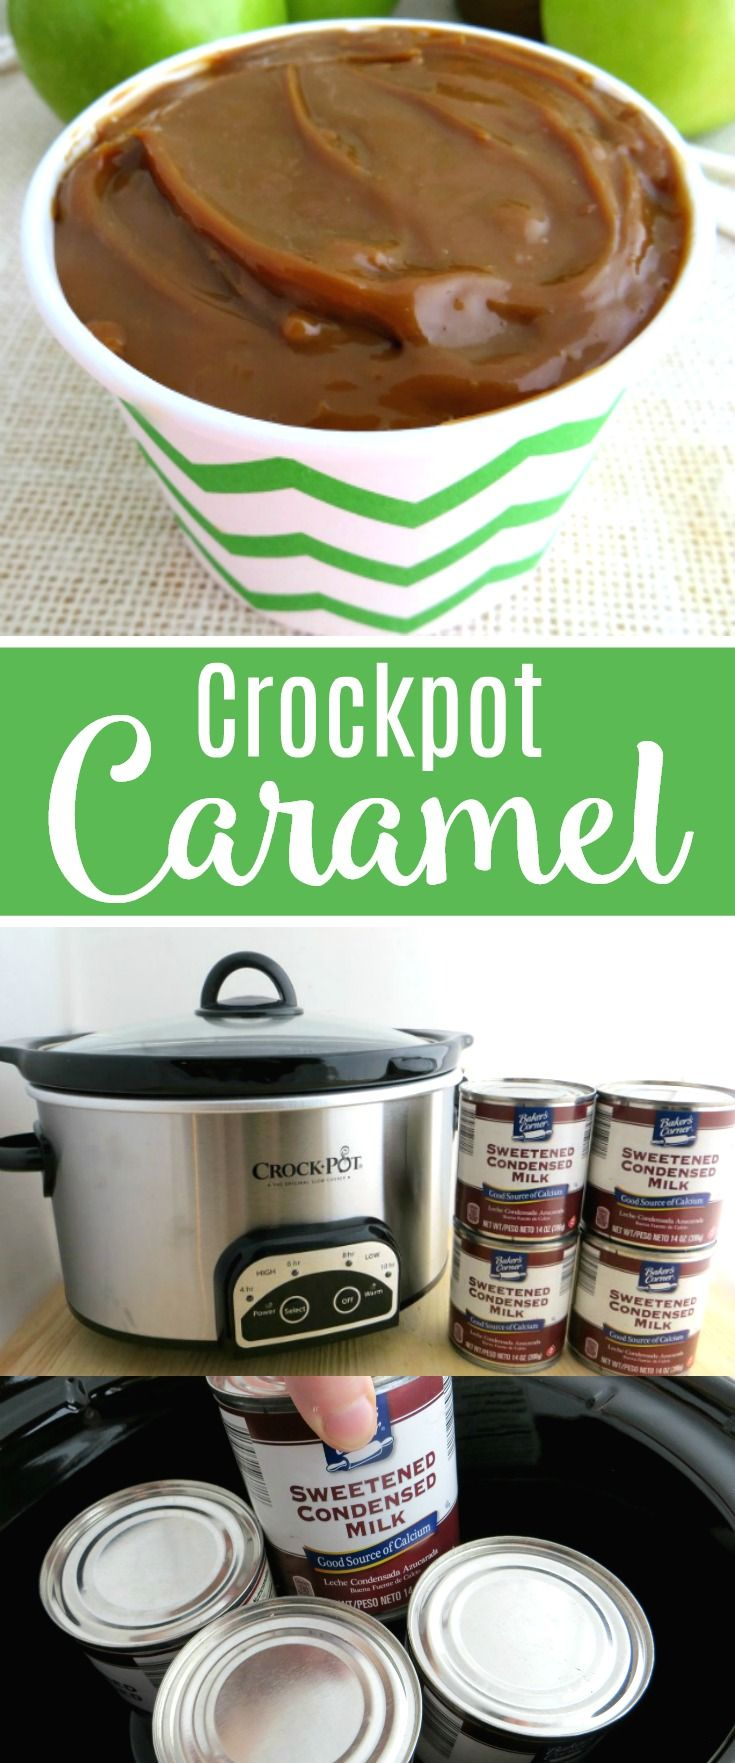 Easy Crockpot Caramel Sauce Made With 1 Ingredient Delicious Dip For Apples Or As A Toppi Crock Pot Desserts Sweetened Condensed Milk Recipes Caramel Desserts